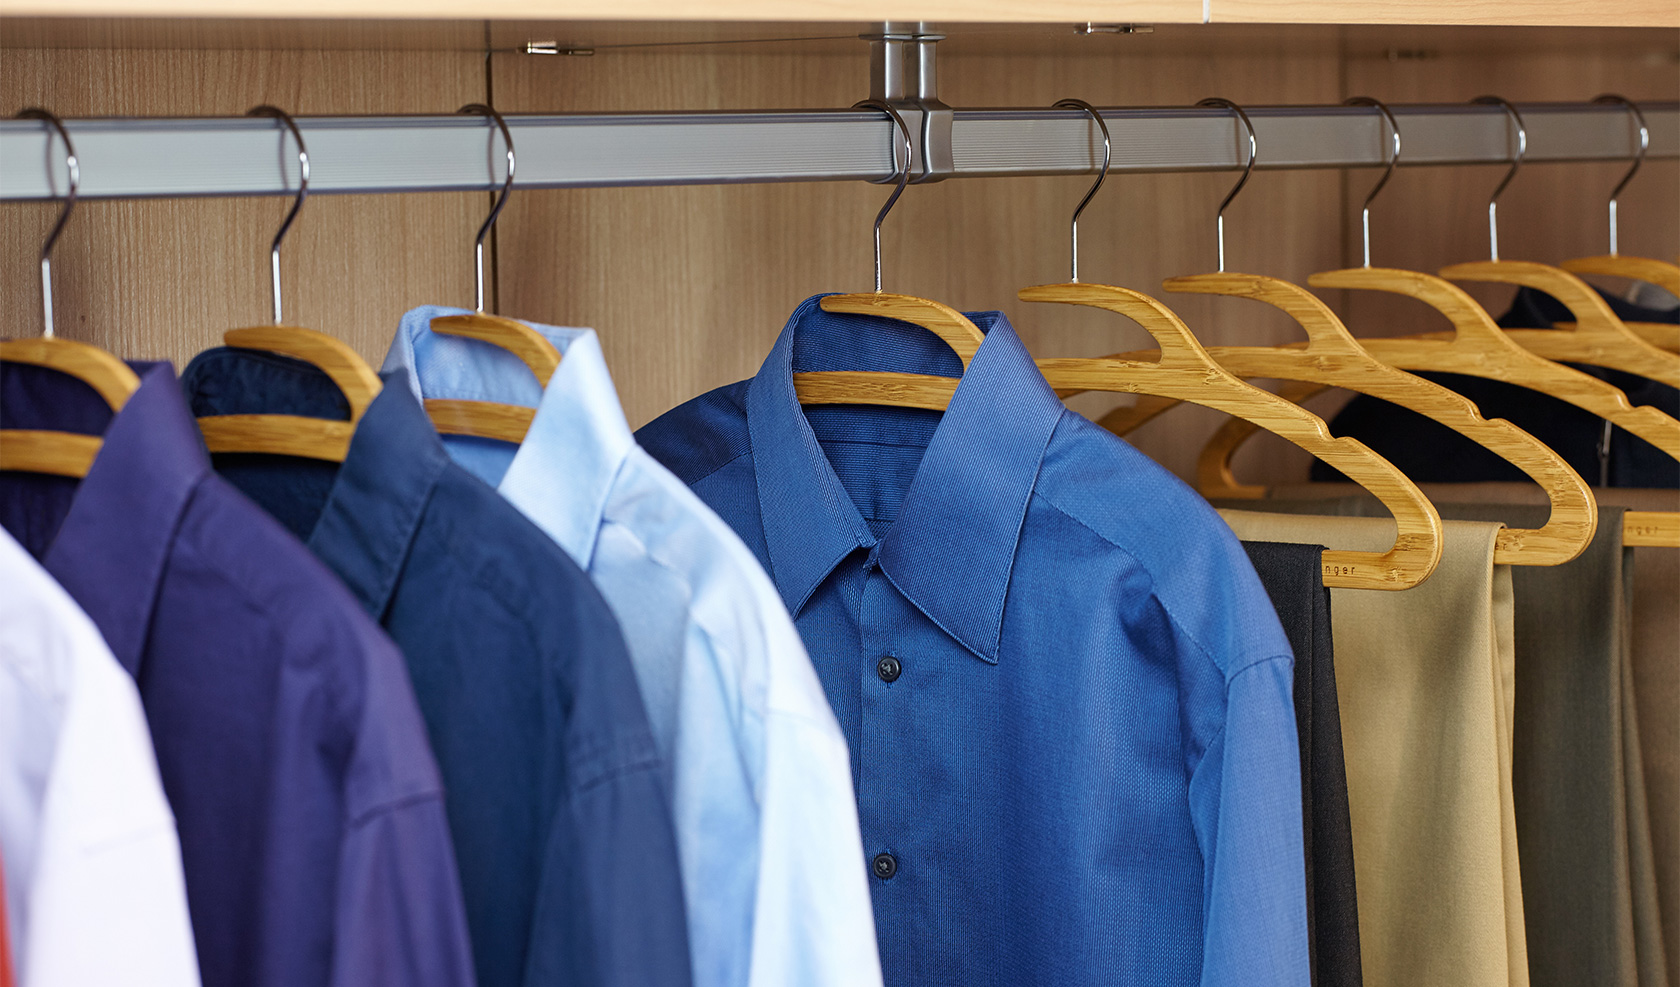 Multiple bamboo Mozu Hangers in closet with shirts and pants